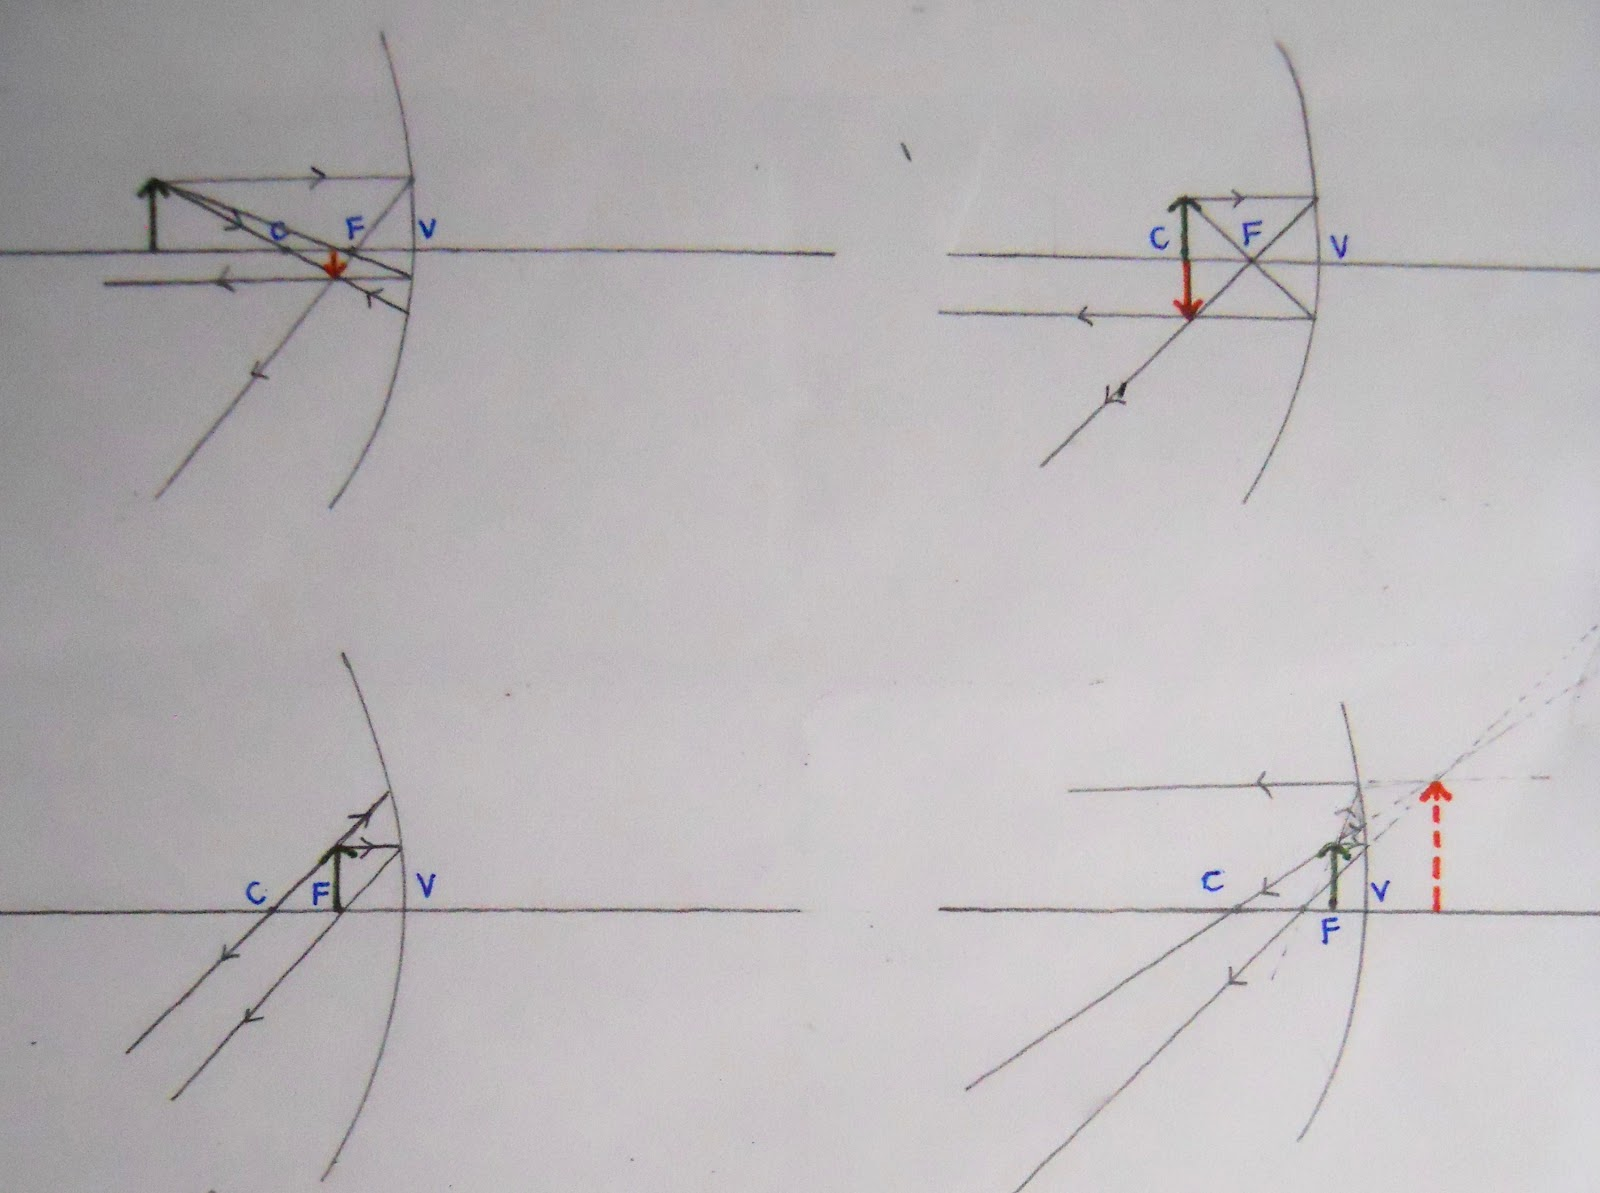 diagram 1 light ray diagrams which show how the image in convex mirror changes depending on the object distance [ 1600 x 1193 Pixel ]